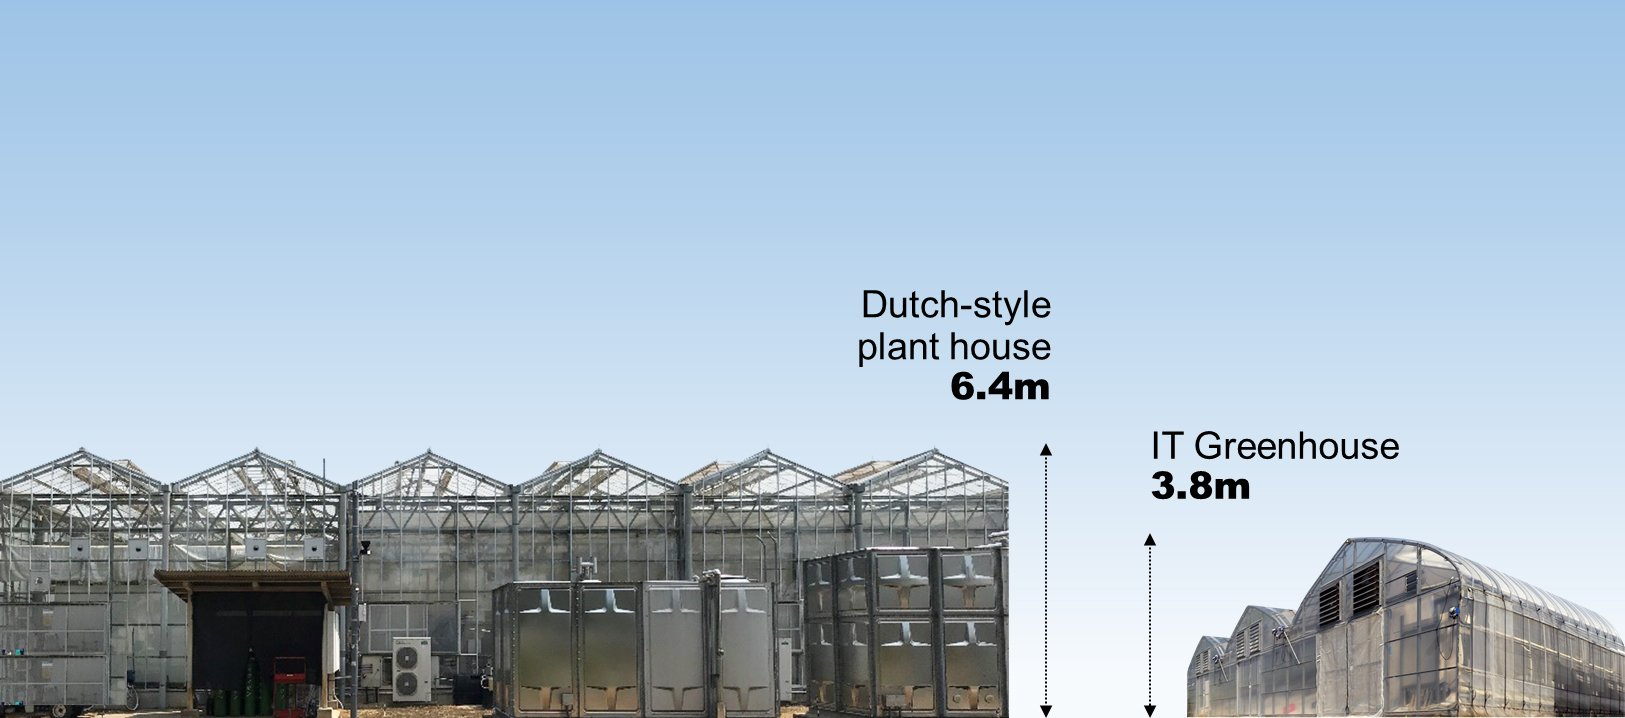 Difference in height: Dutch-style and IT Greenhouse